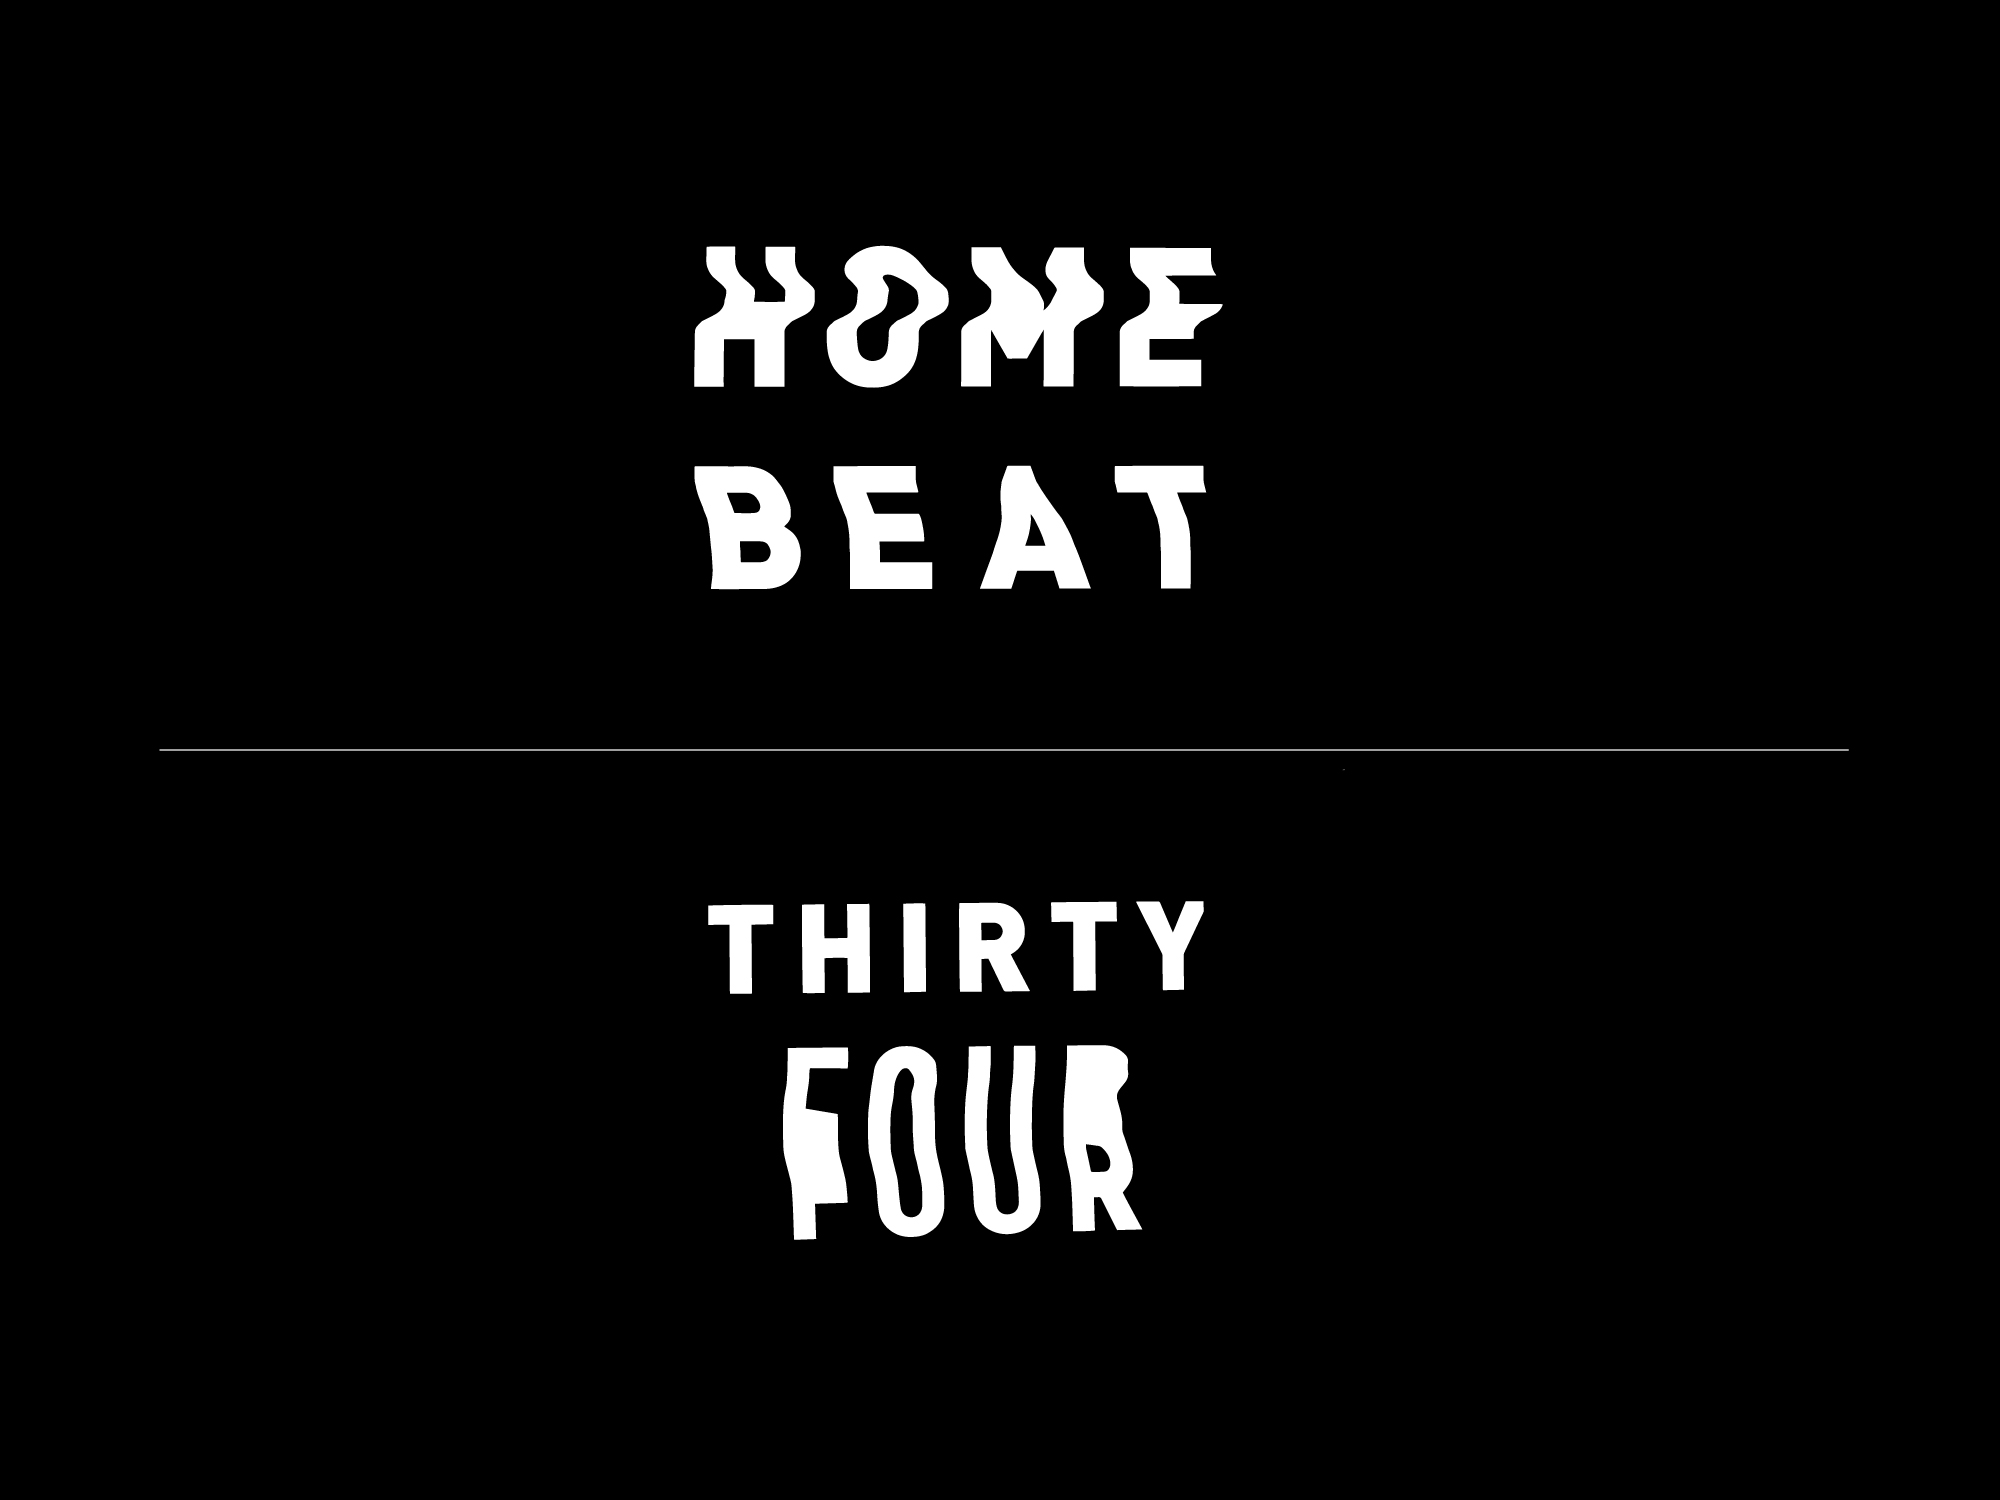 Cover image: Homebeat + 34 Identity